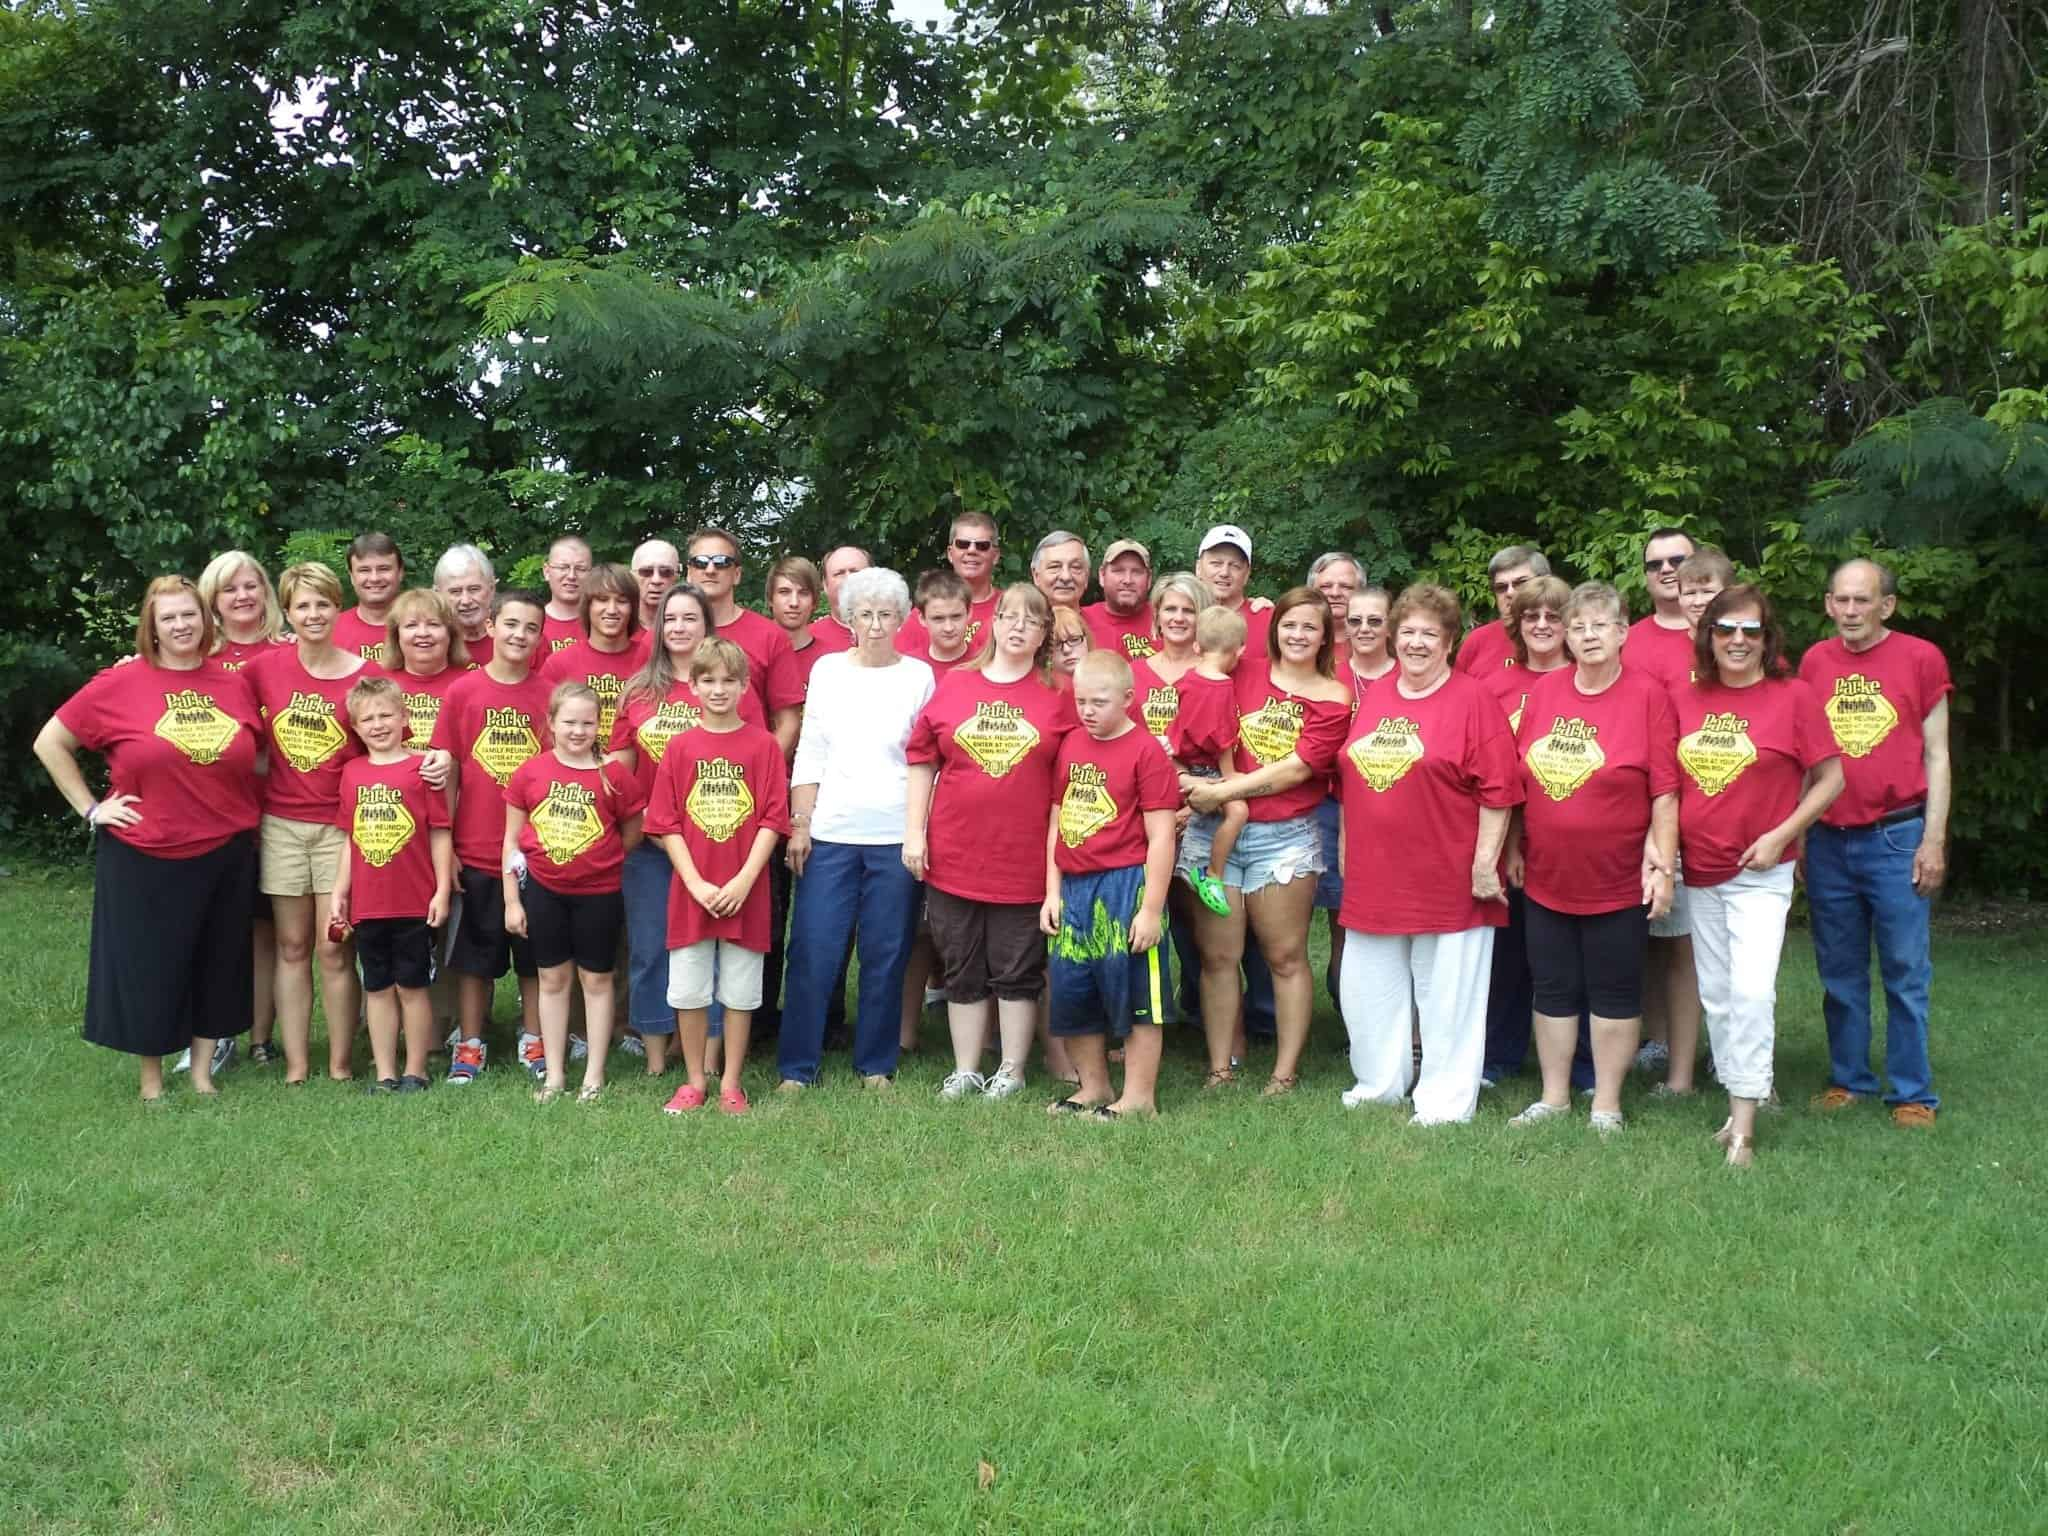 Parke family reunion at The Inn On The River